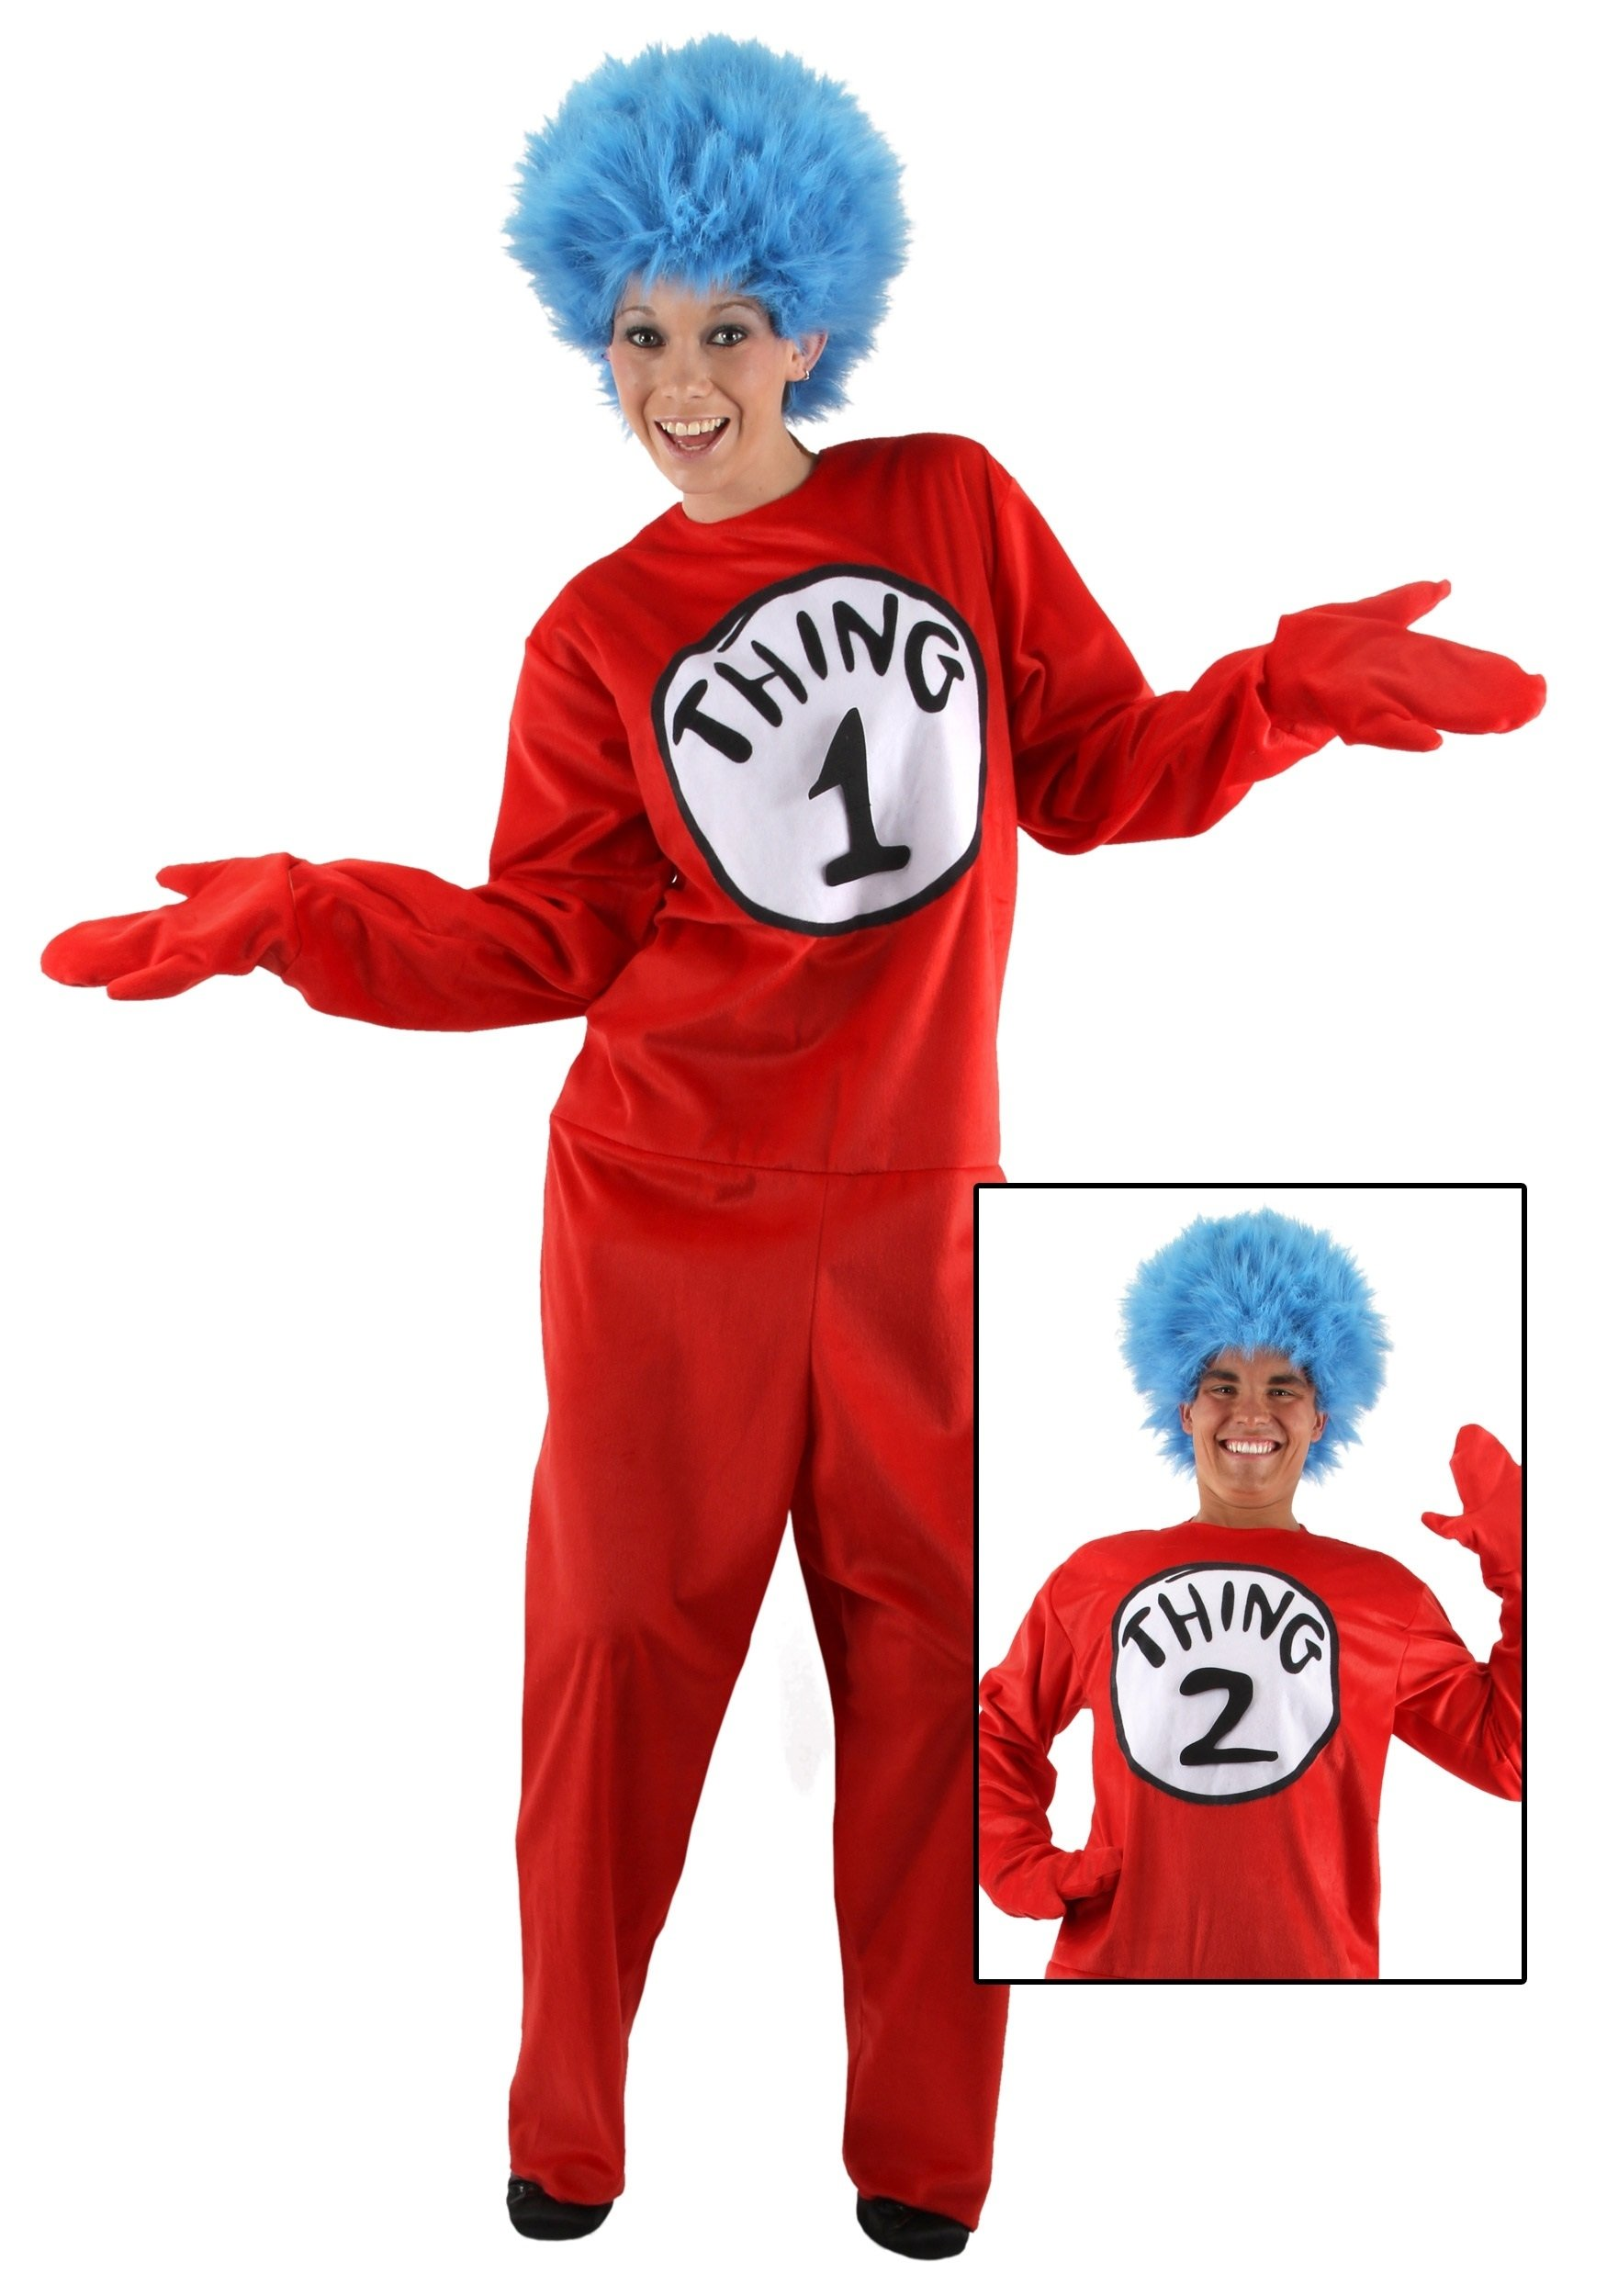 10 Unique Thing 1 And Thing 2 Costume Ideas adult thing 1 and 2 costume 2021